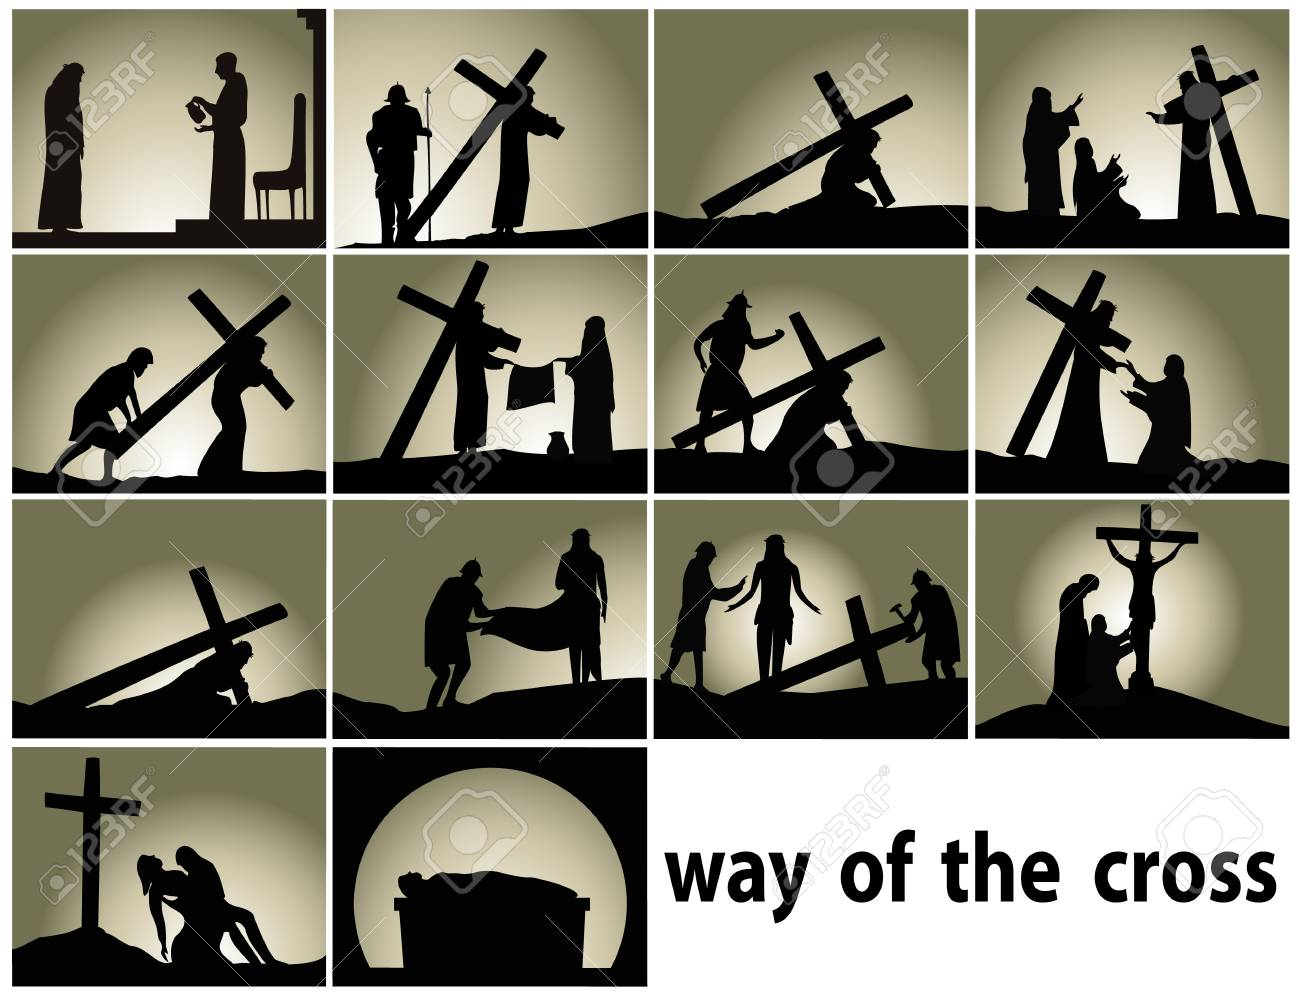 Abstract religious background with Way of the Cross stations - 95892882